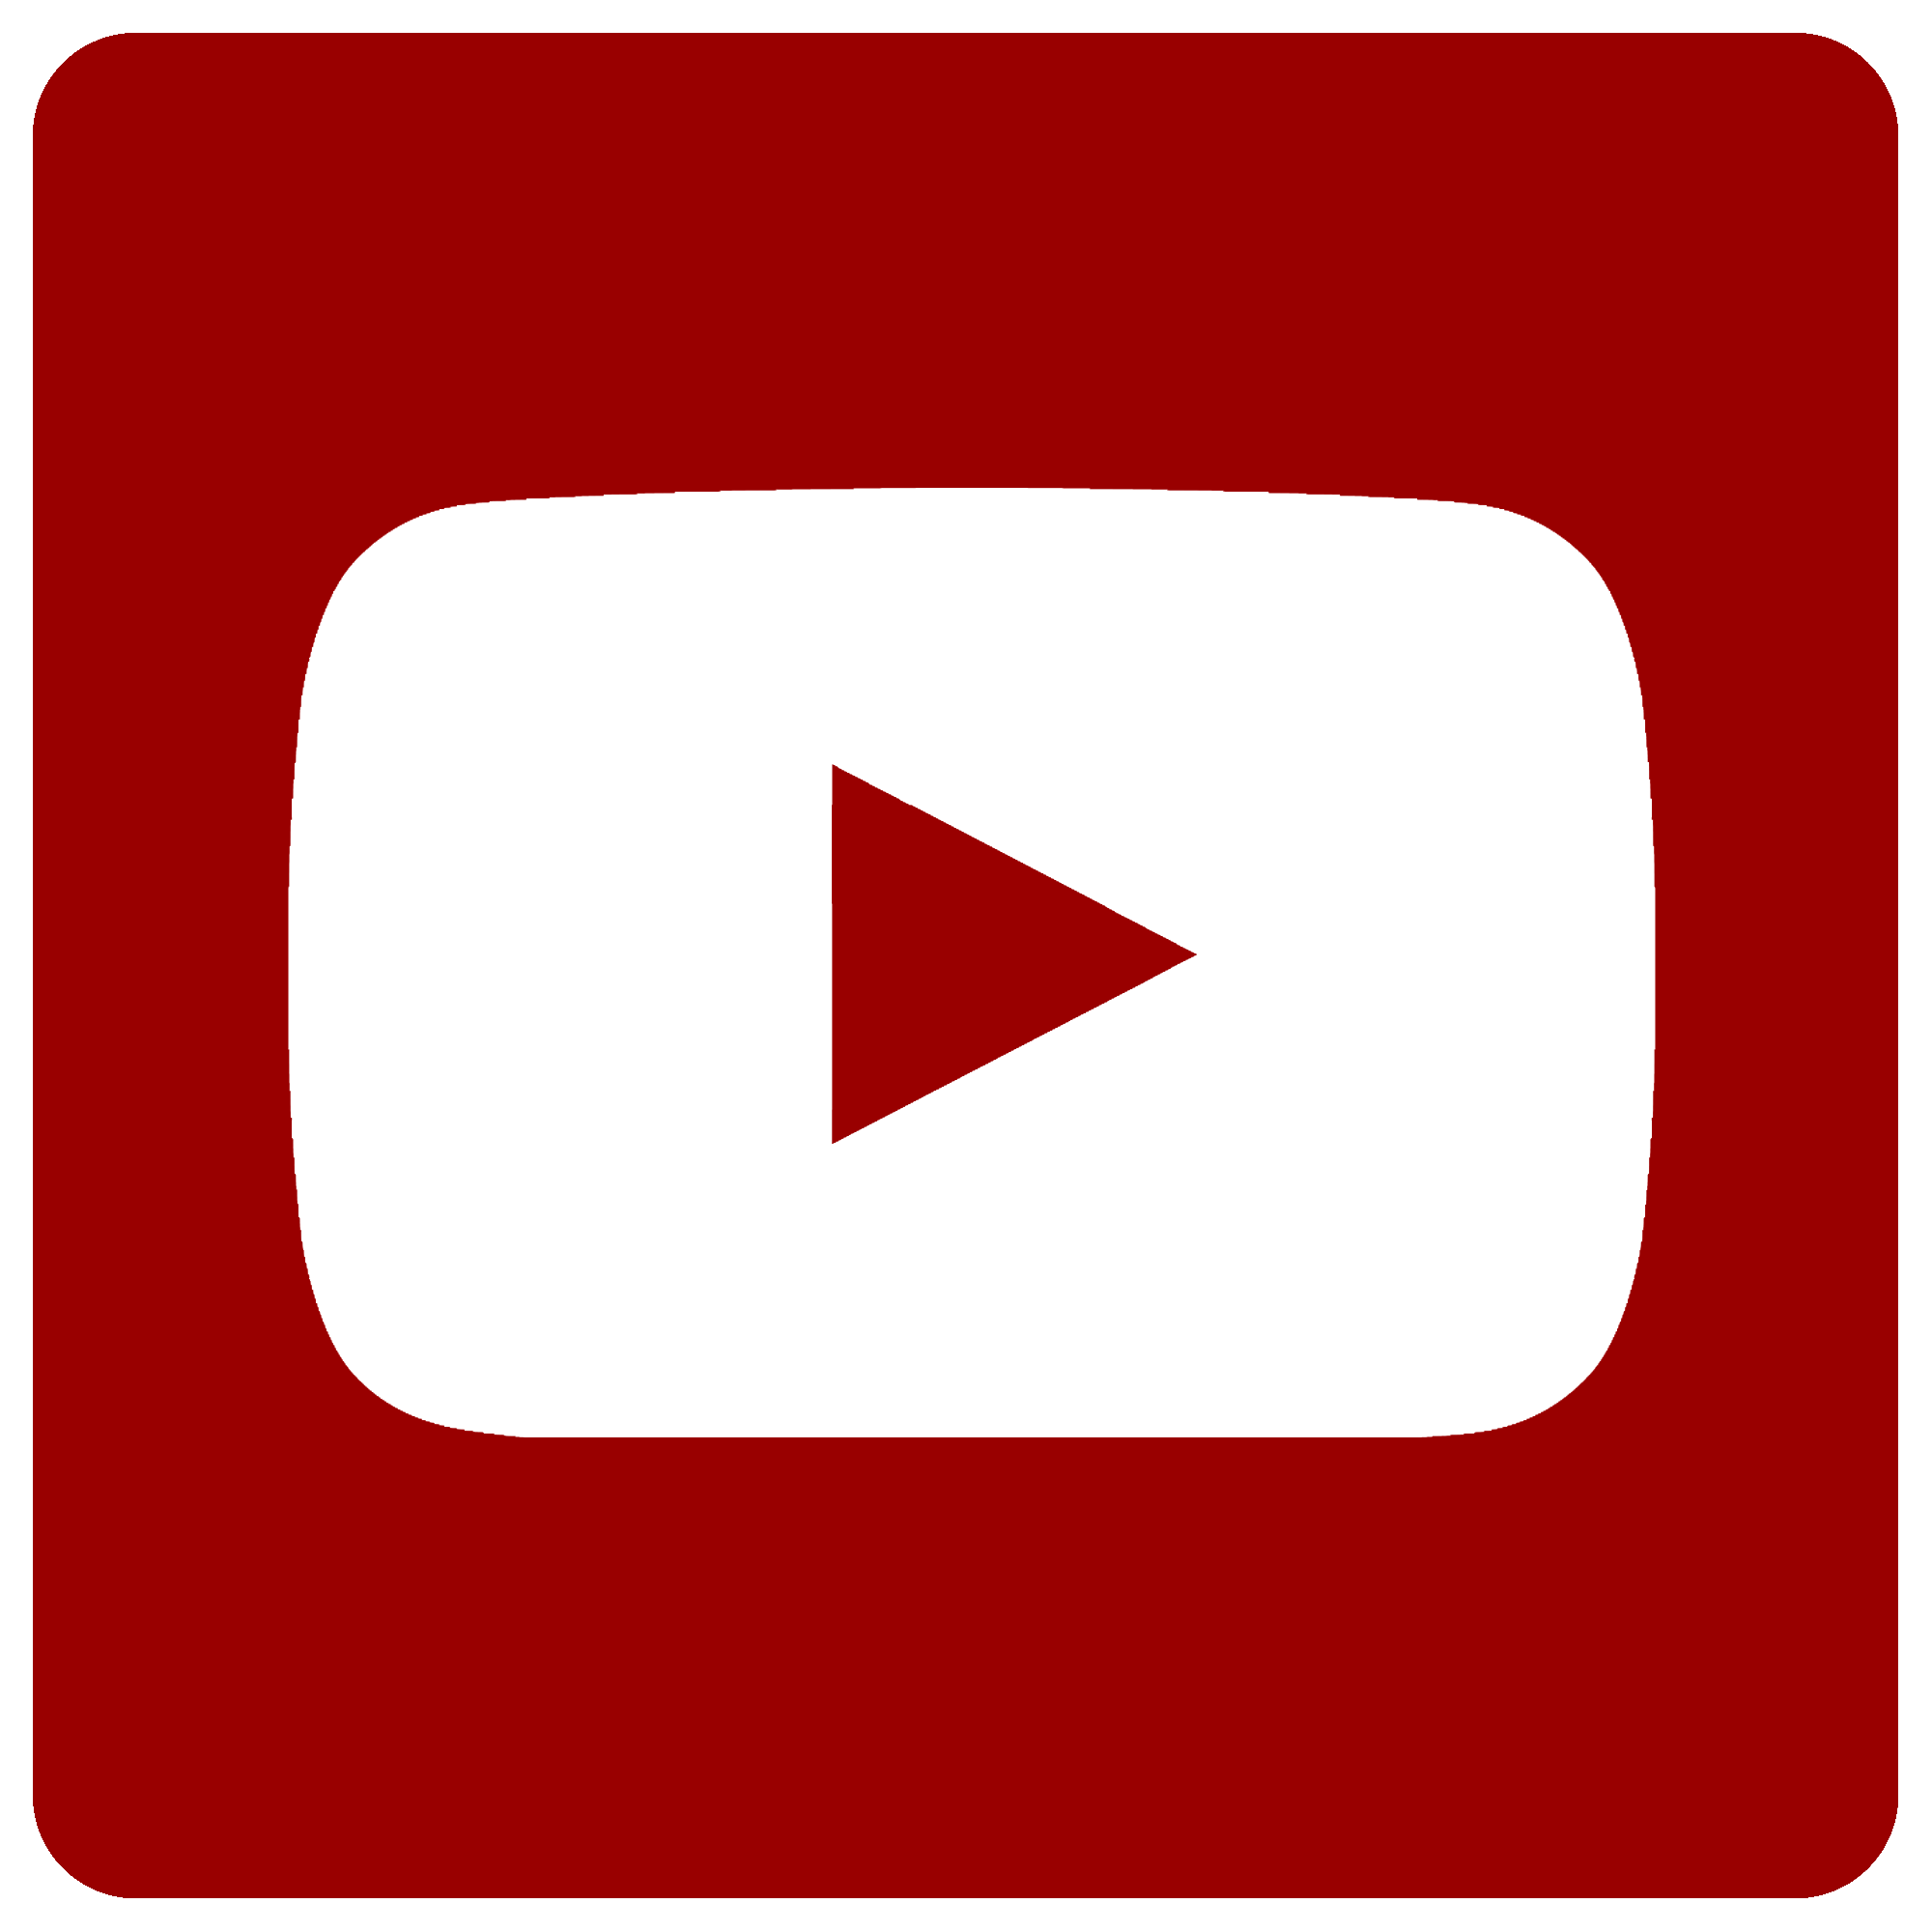 official youtube logo png #2079